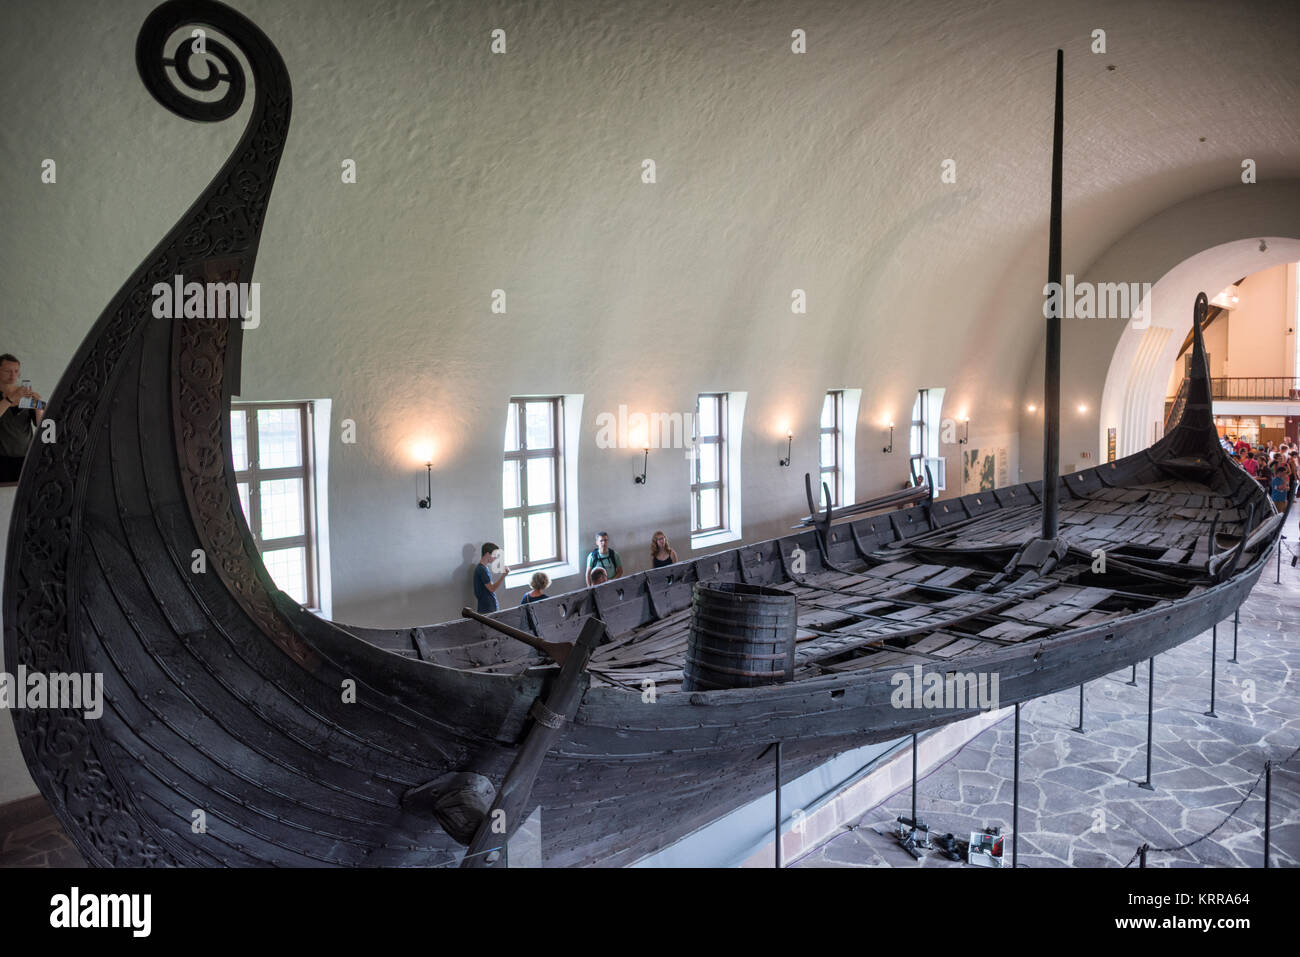 OSLO, Norway - The Oseberg ship is an extraordinarily well-preserved Viking boat that is one of the highlights at - Stock Image